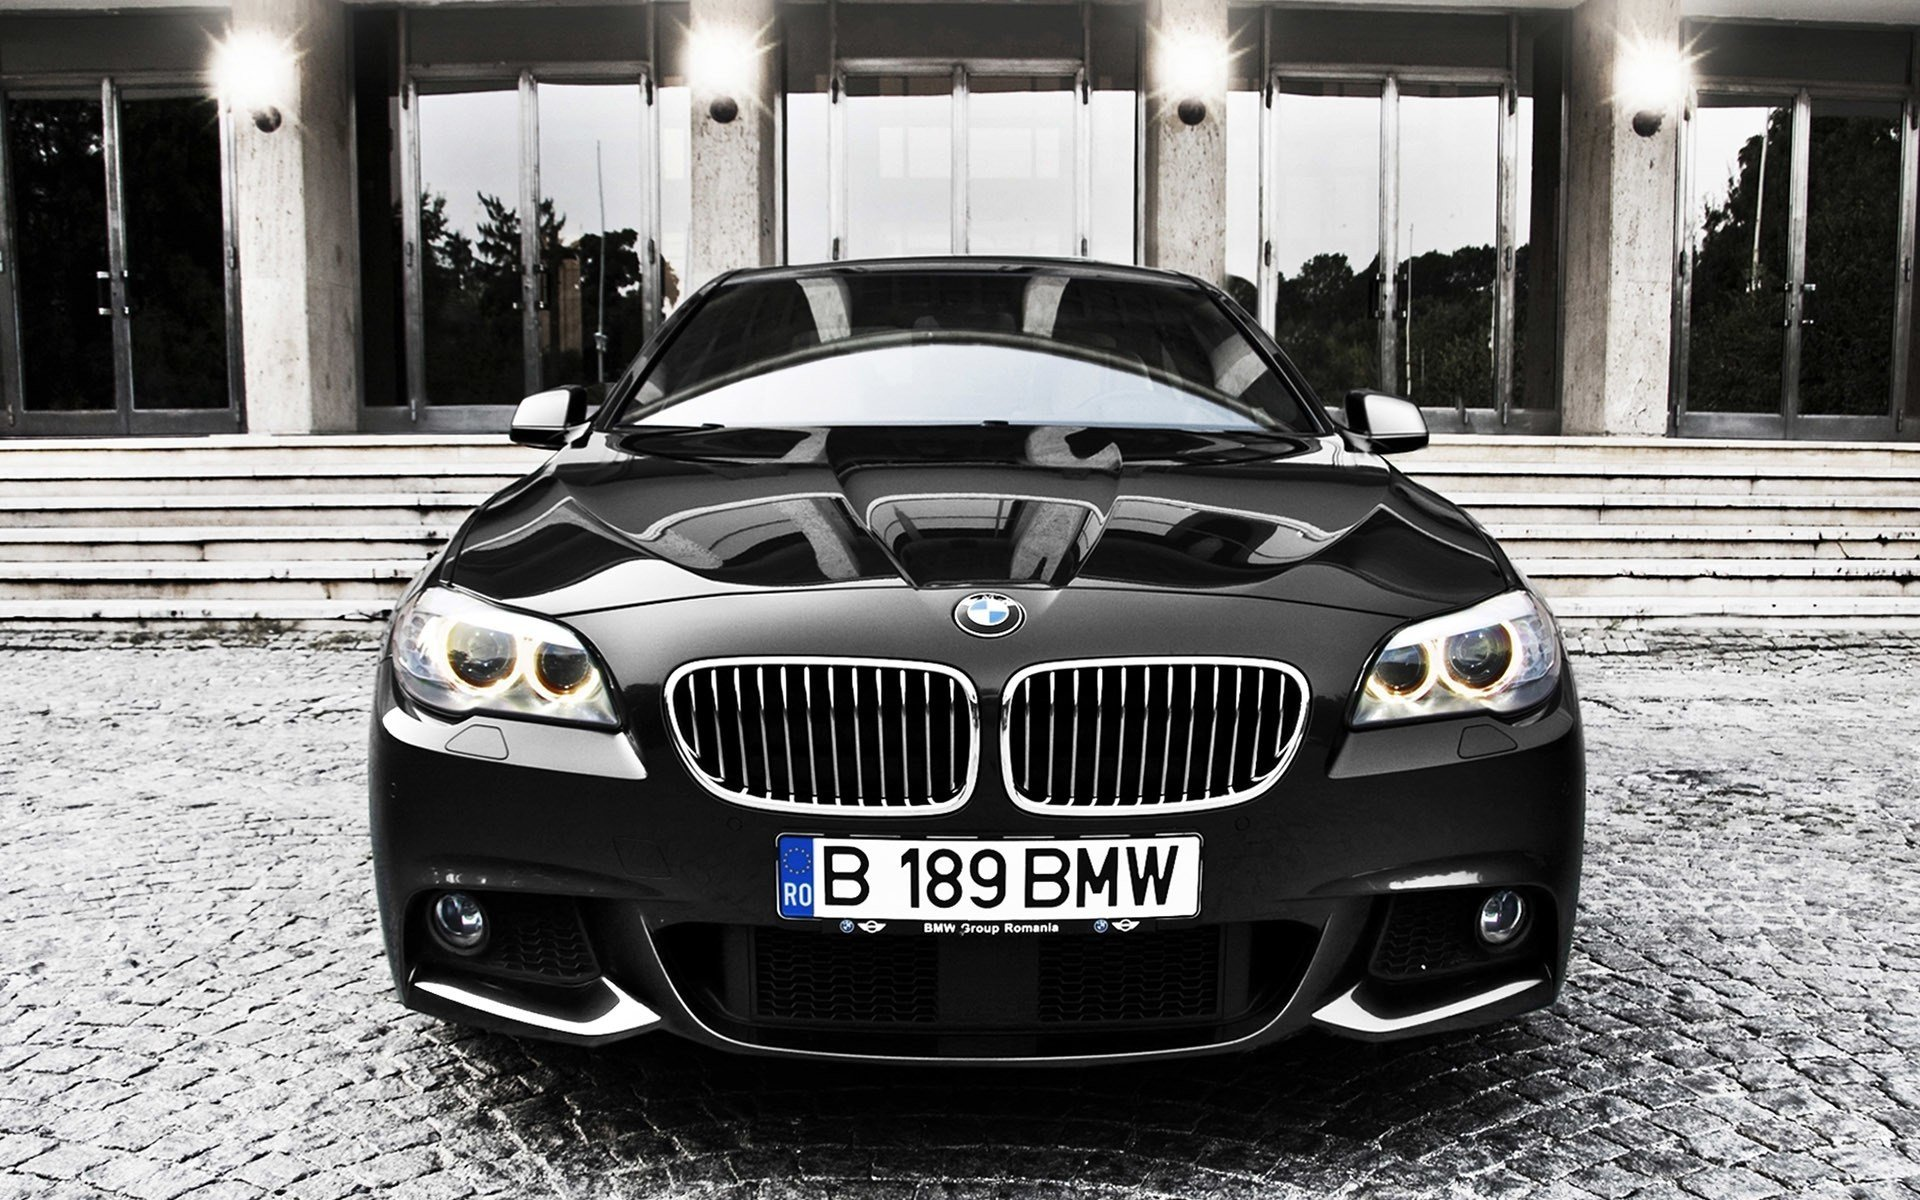 Latest Bmw Black Backgrounds Cars Hd Wallpaper Free Download